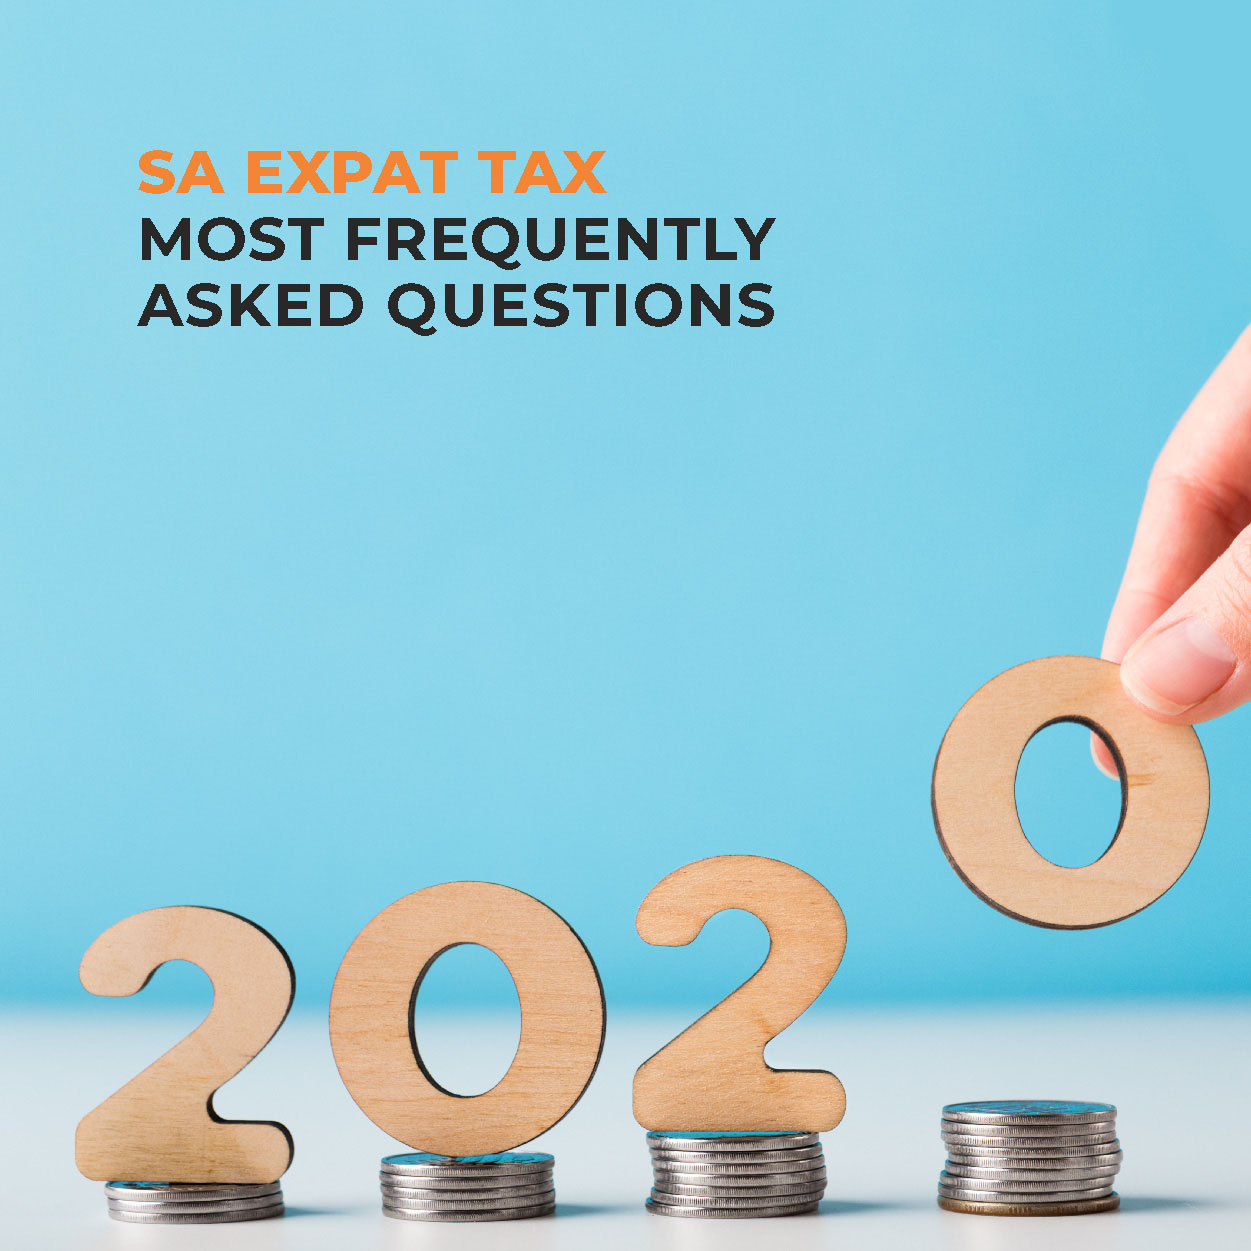 SA Expat Tax - Most Frequently Asked Questions